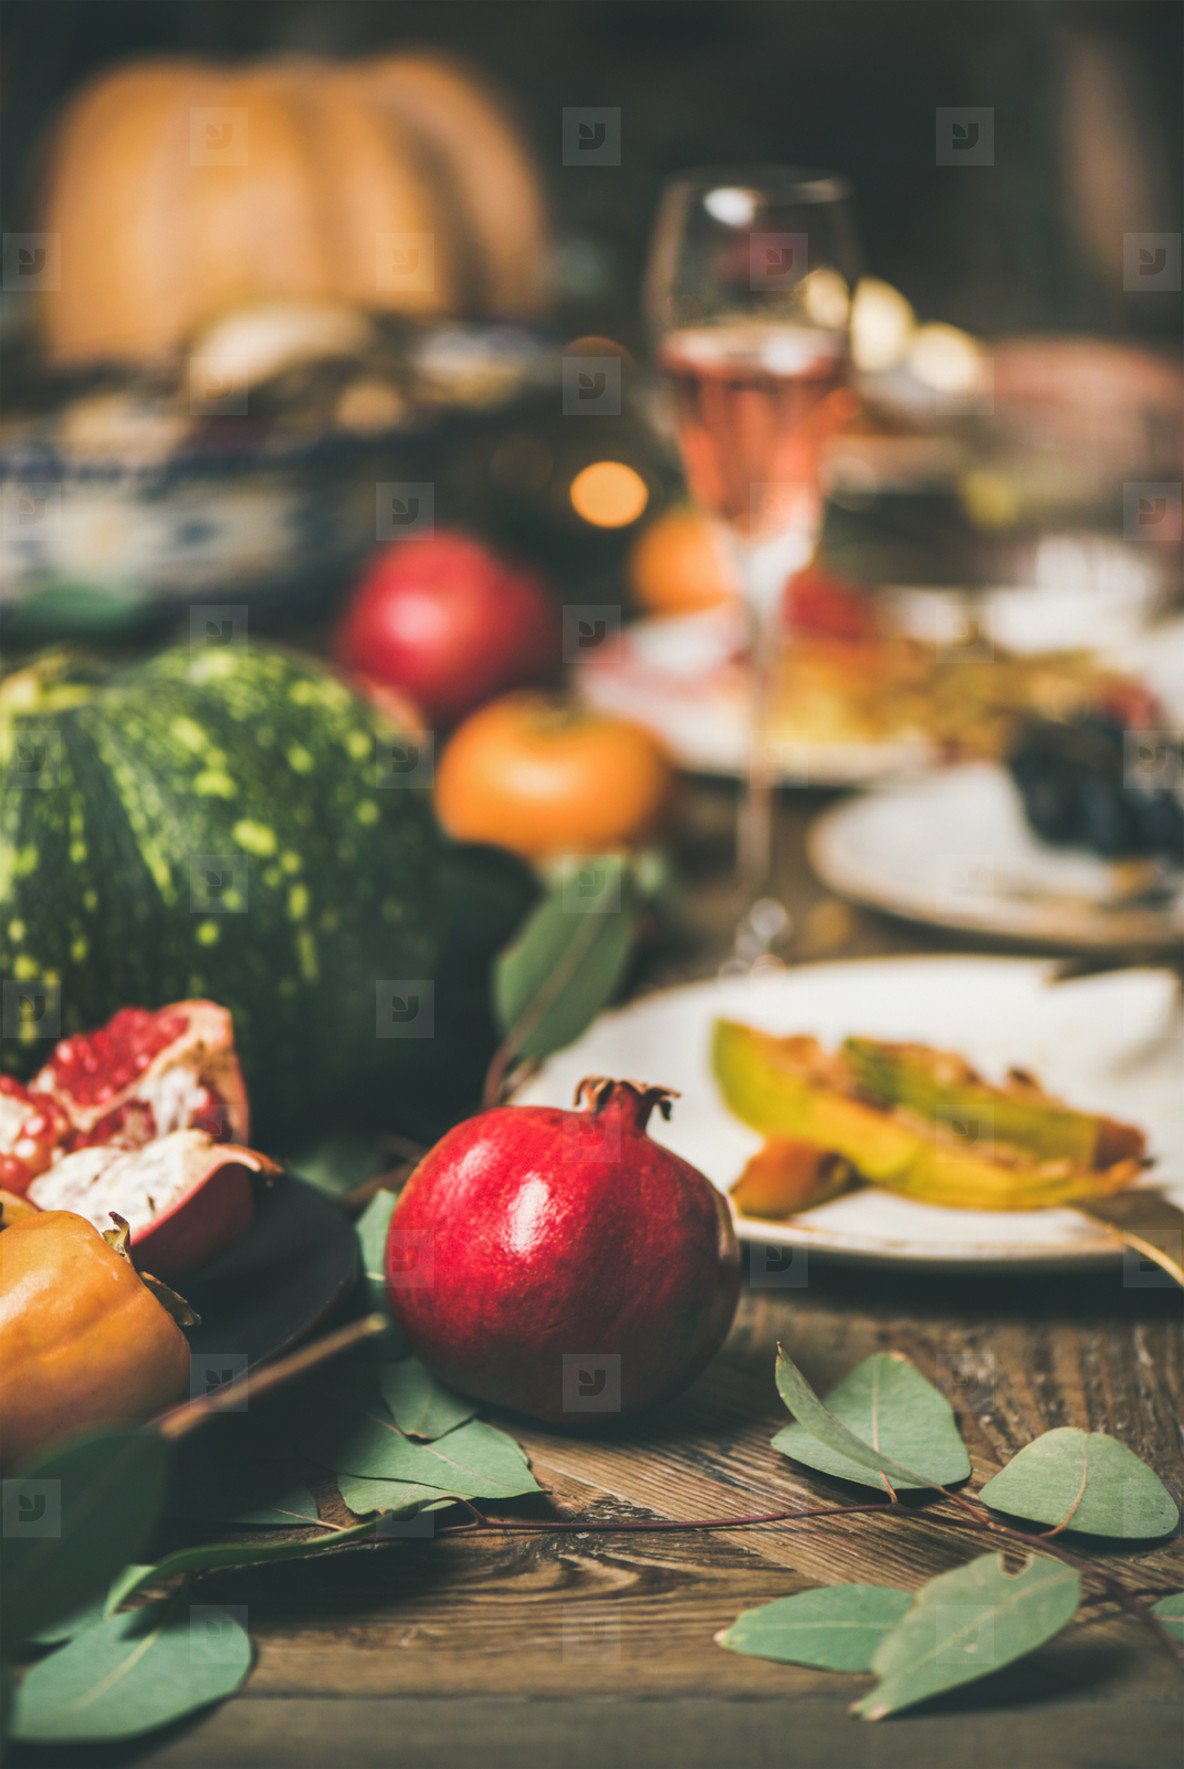 Rose wine and different snacks at festive Christmas table